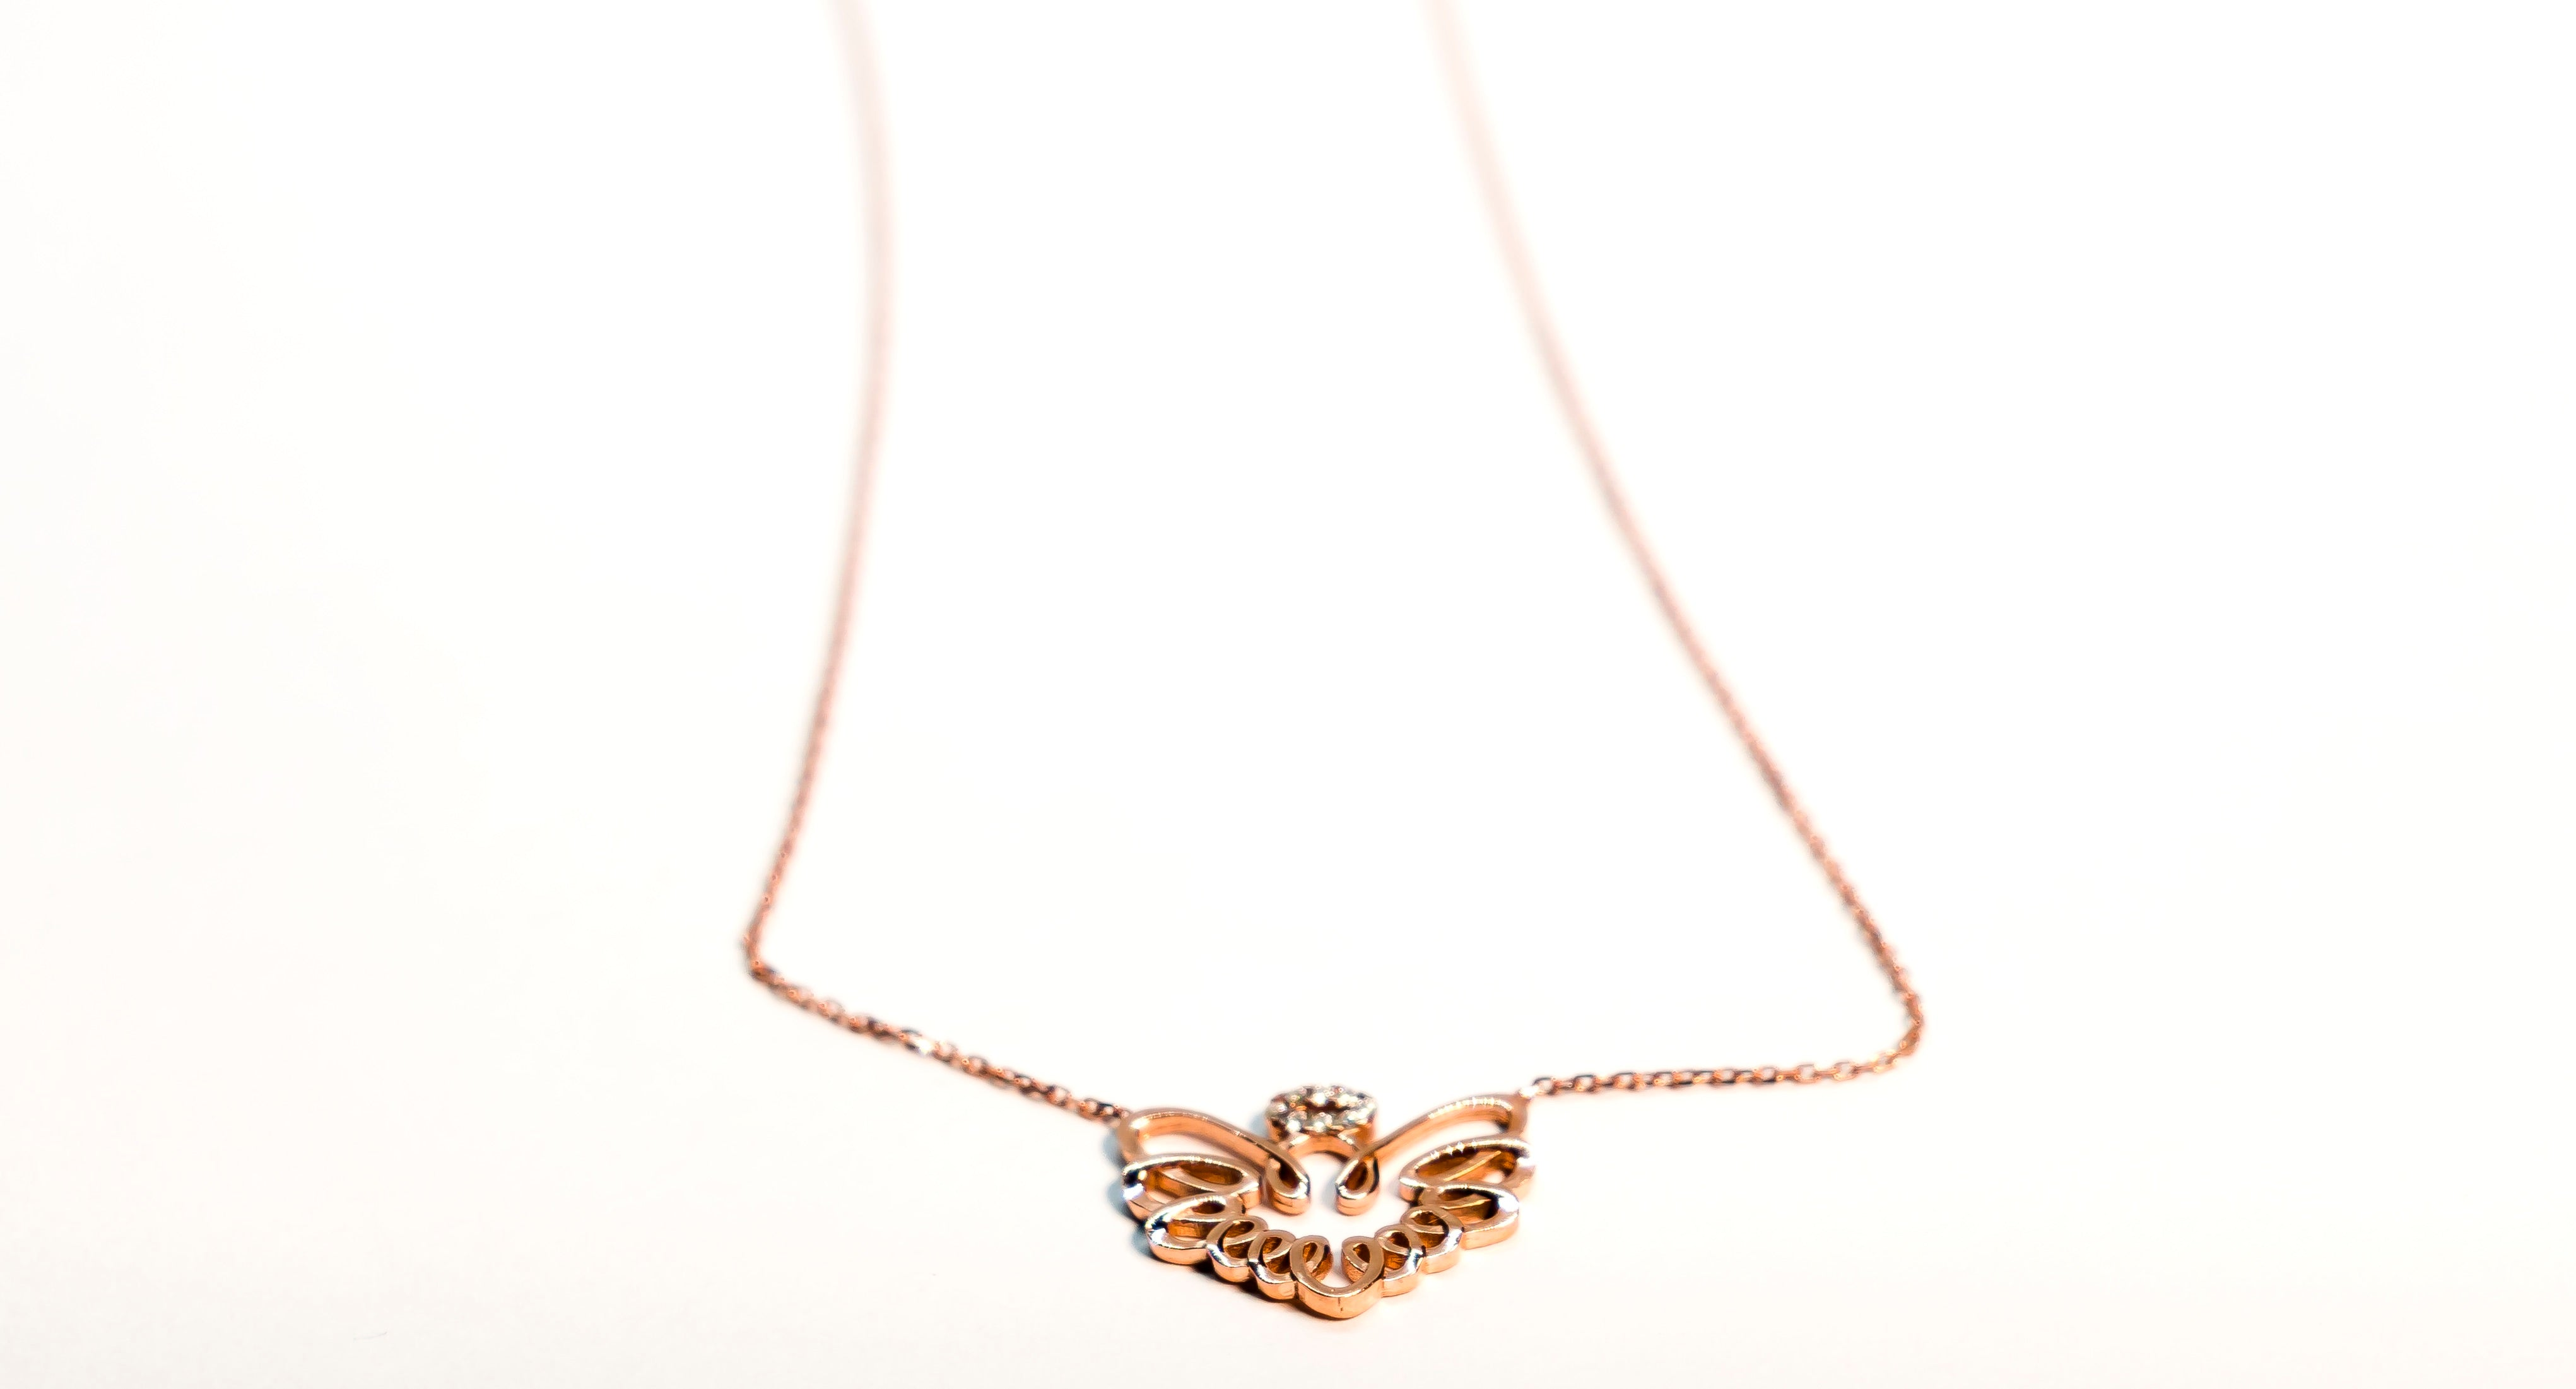 The Glared Angel Halo Necklace